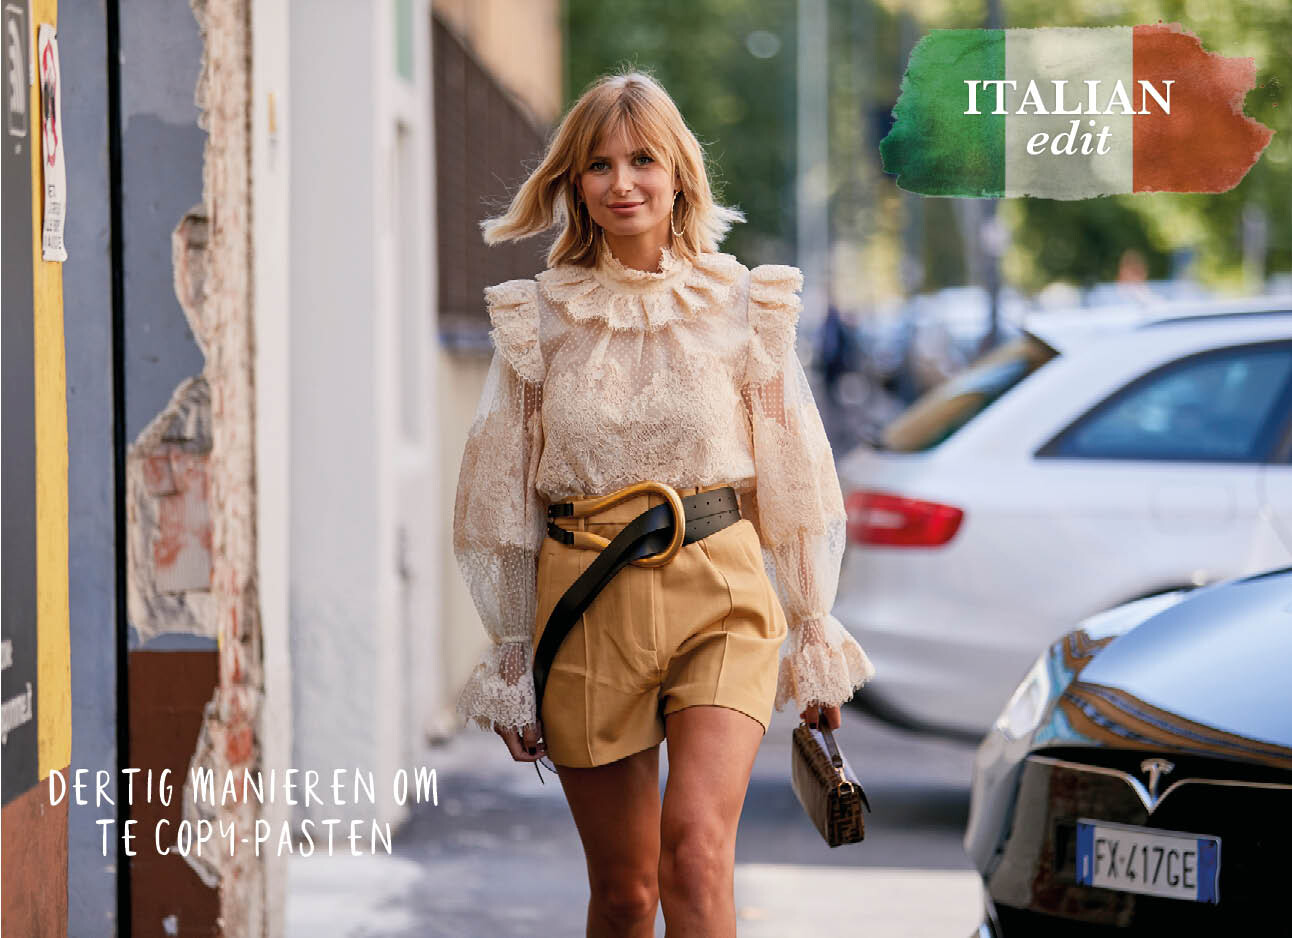 De #1 stylingtruc van de Italian cool girls